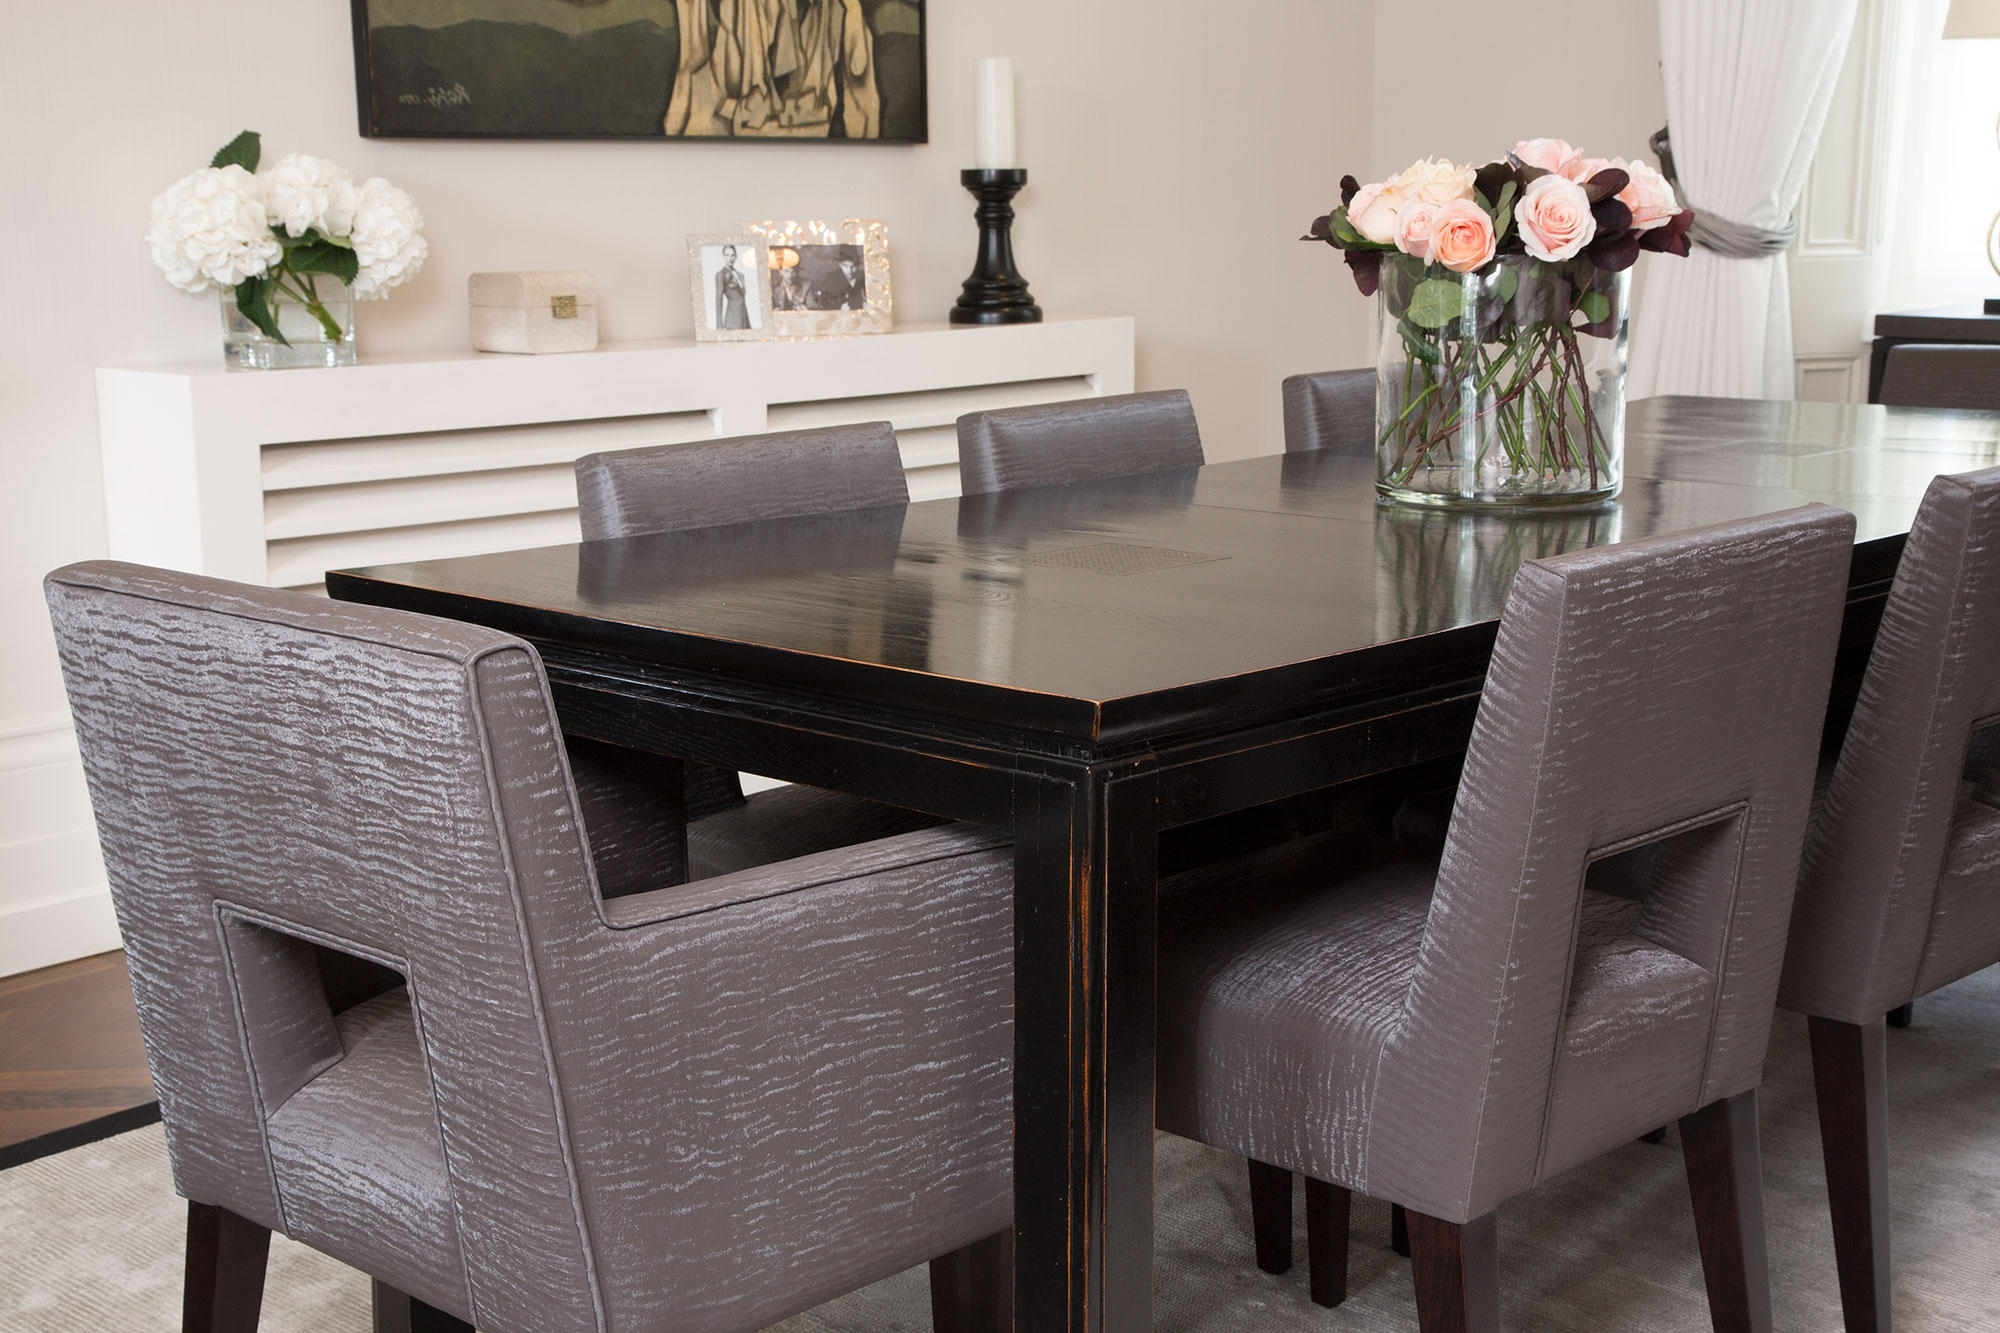 Hugo Dining Chair – Restaurant Chairs From The Sofa & Chair With Regard To 2018 Dining Sofa Chairs (View 4 of 15)